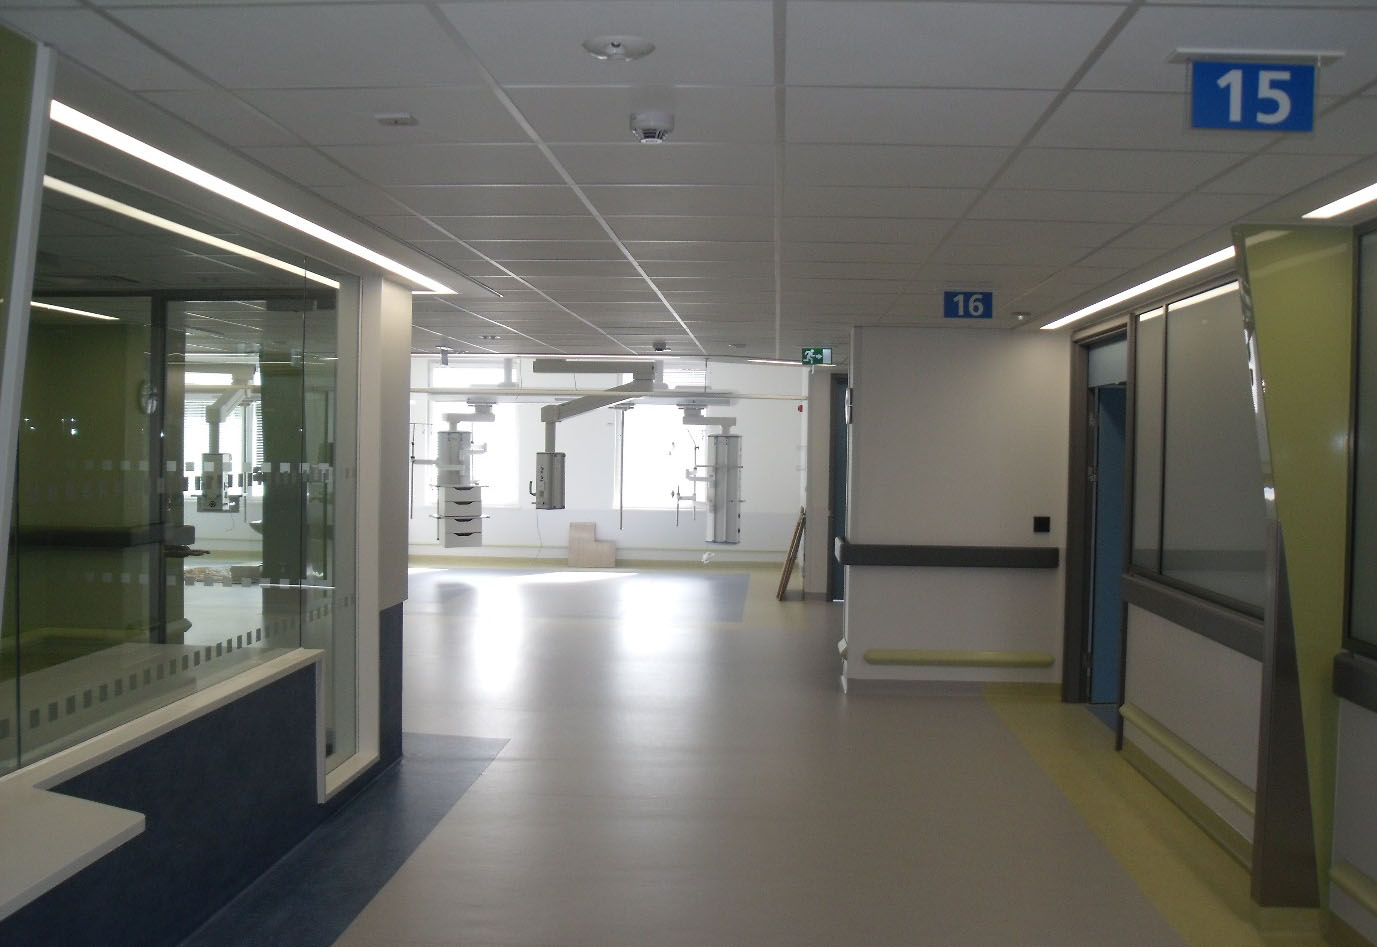 Royal Free Hospital – Intensive Care Unit4